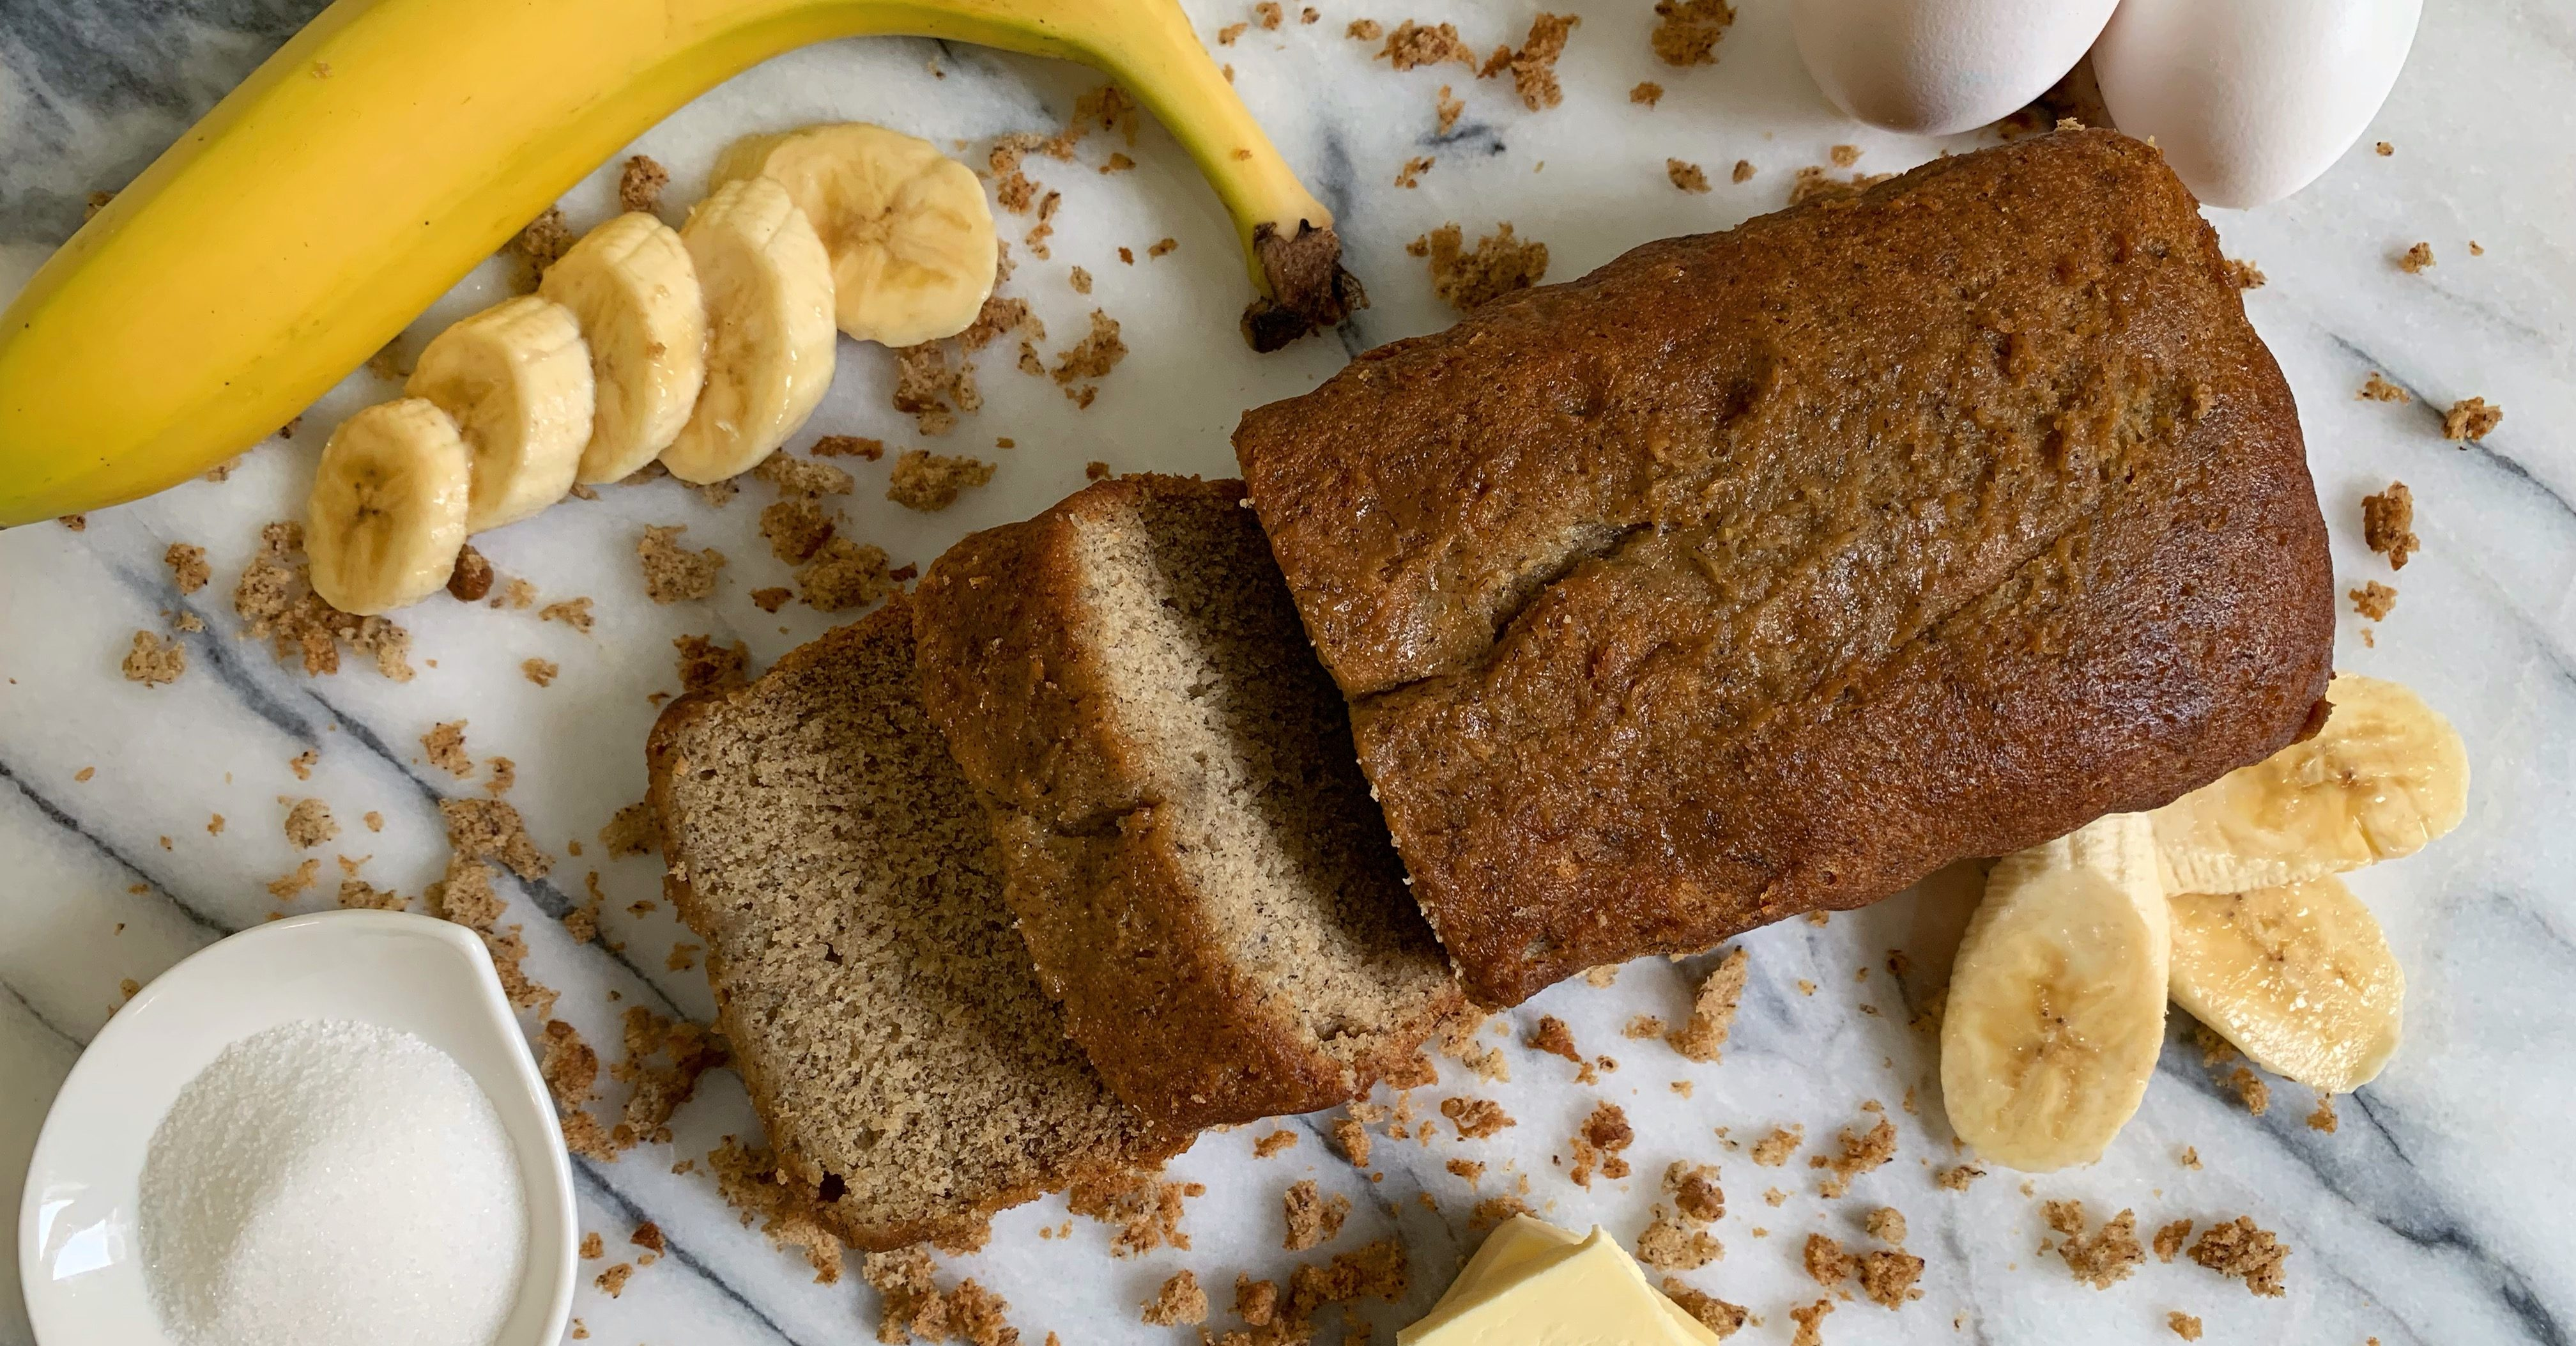 READ: Dessert Lady's Famous Banana Loaf Recipe